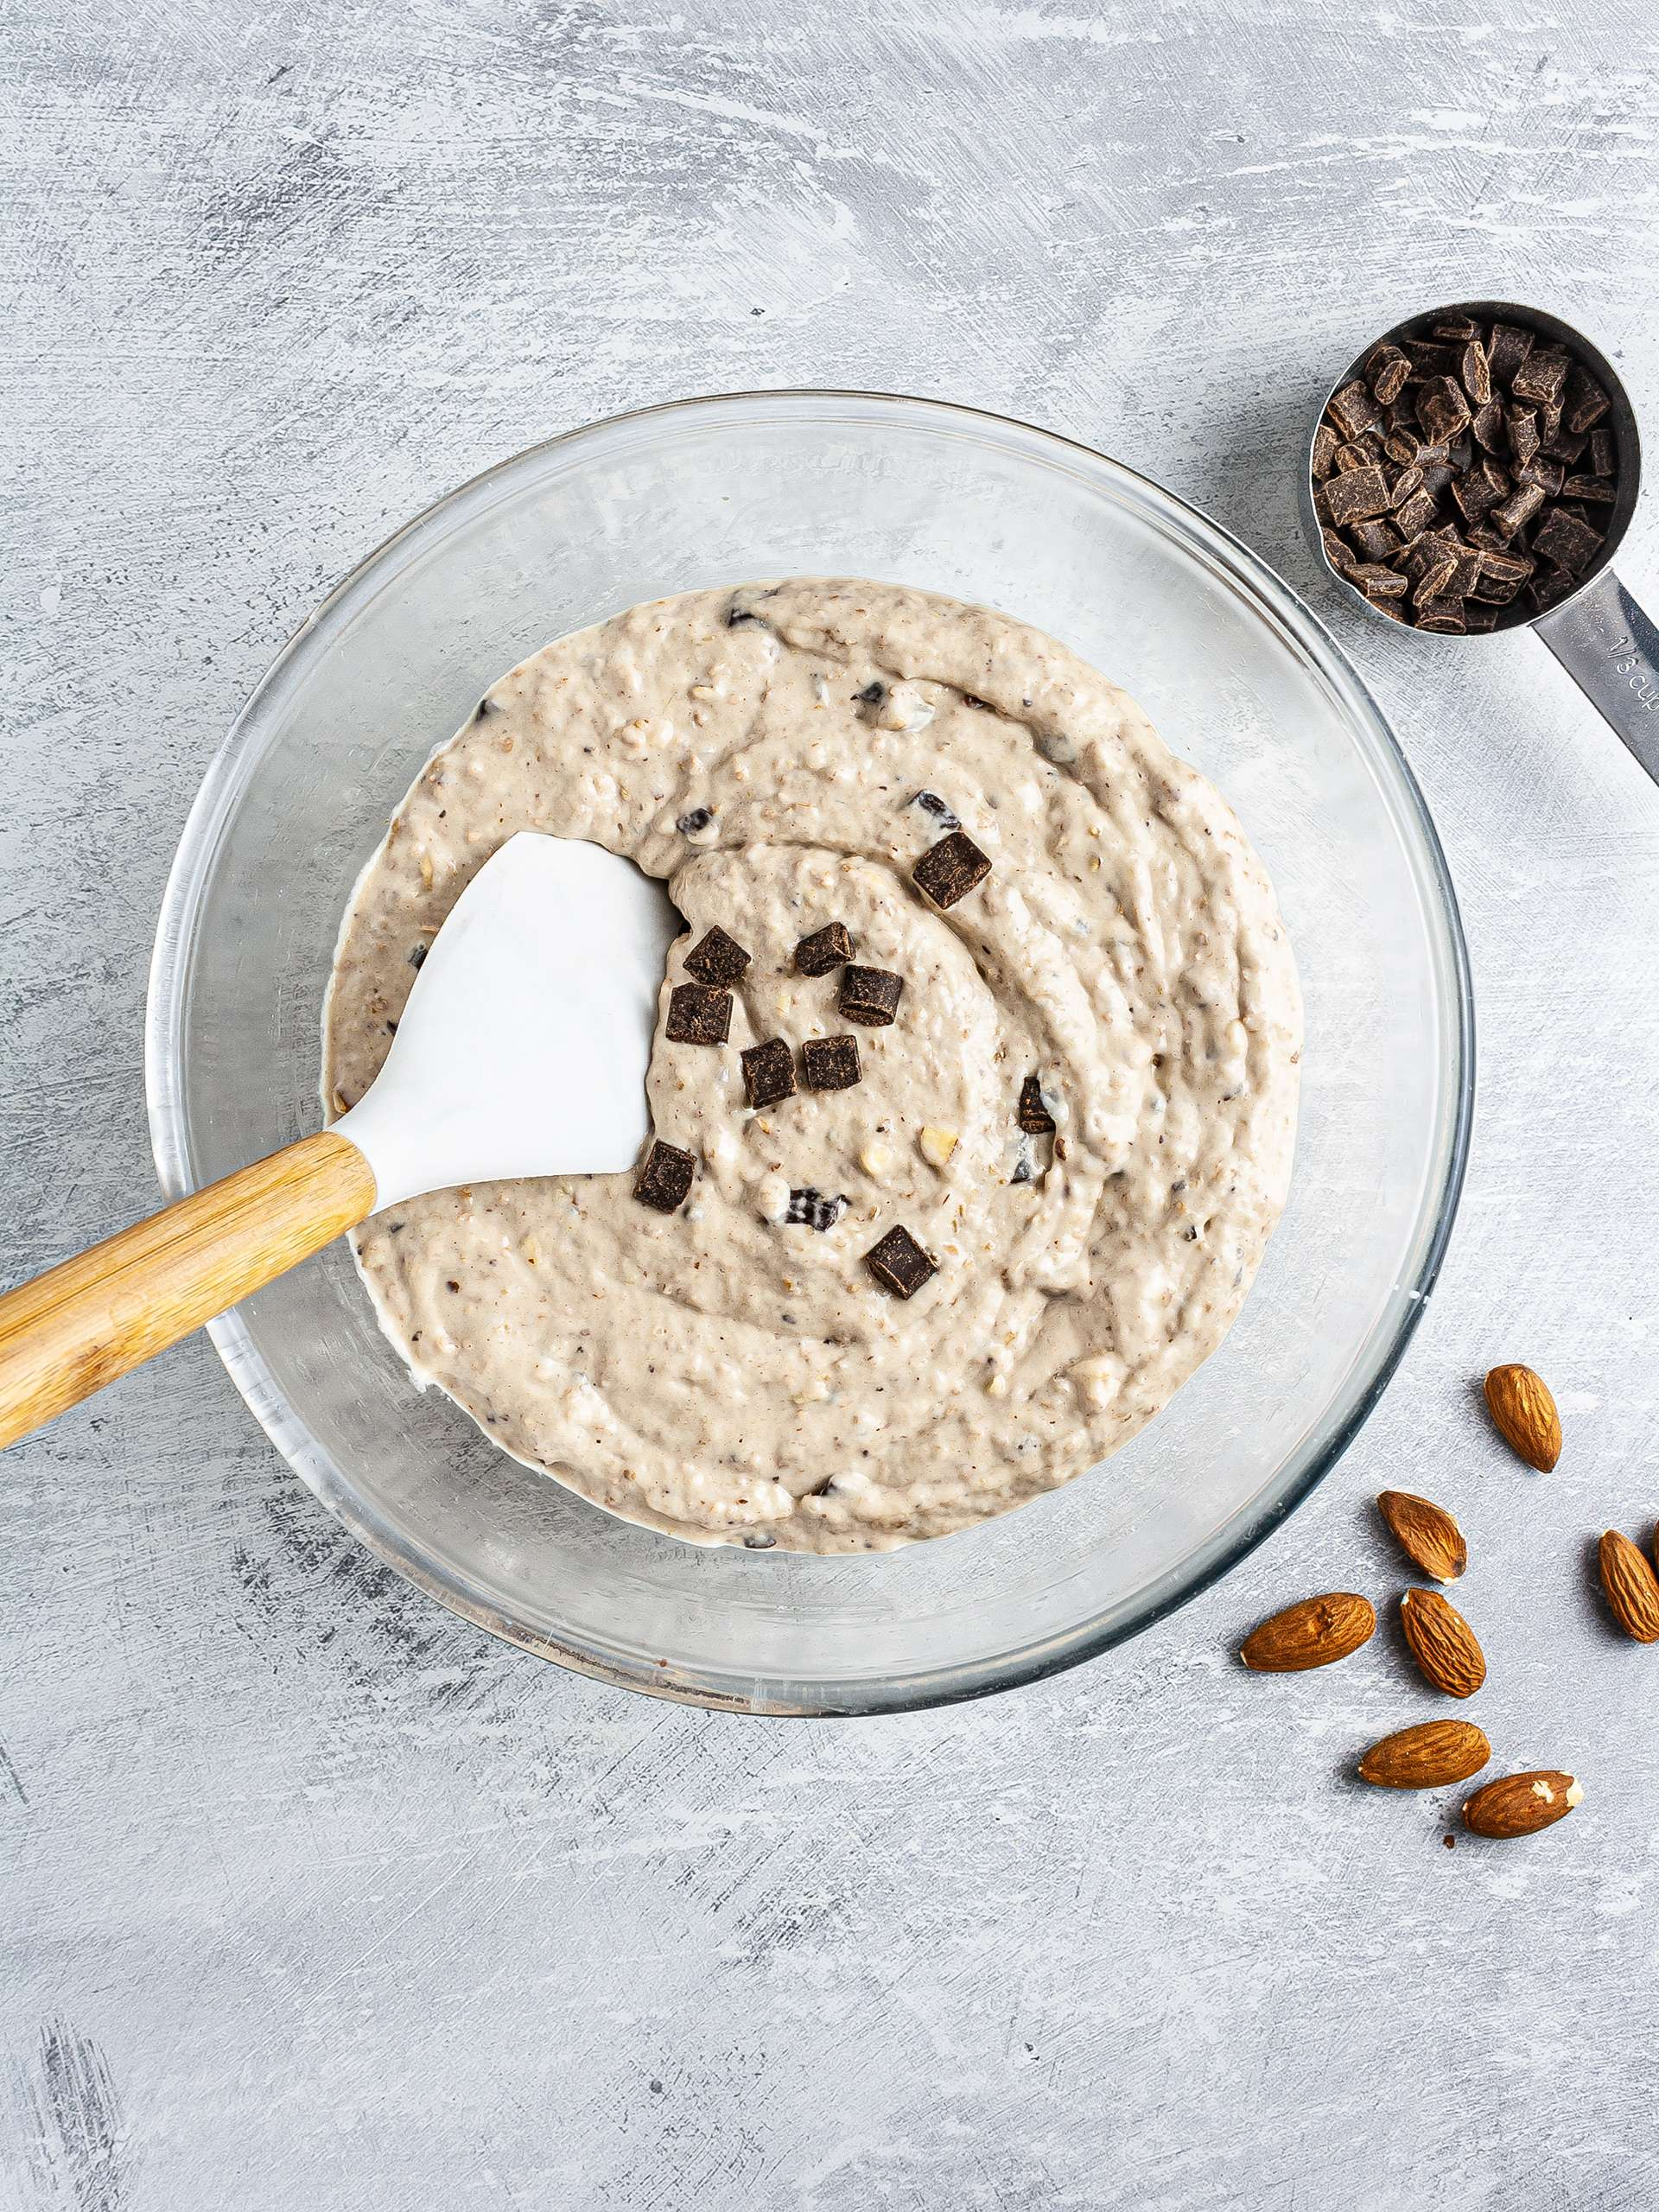 Chocolate chips and chopped almonds in the loaf batter